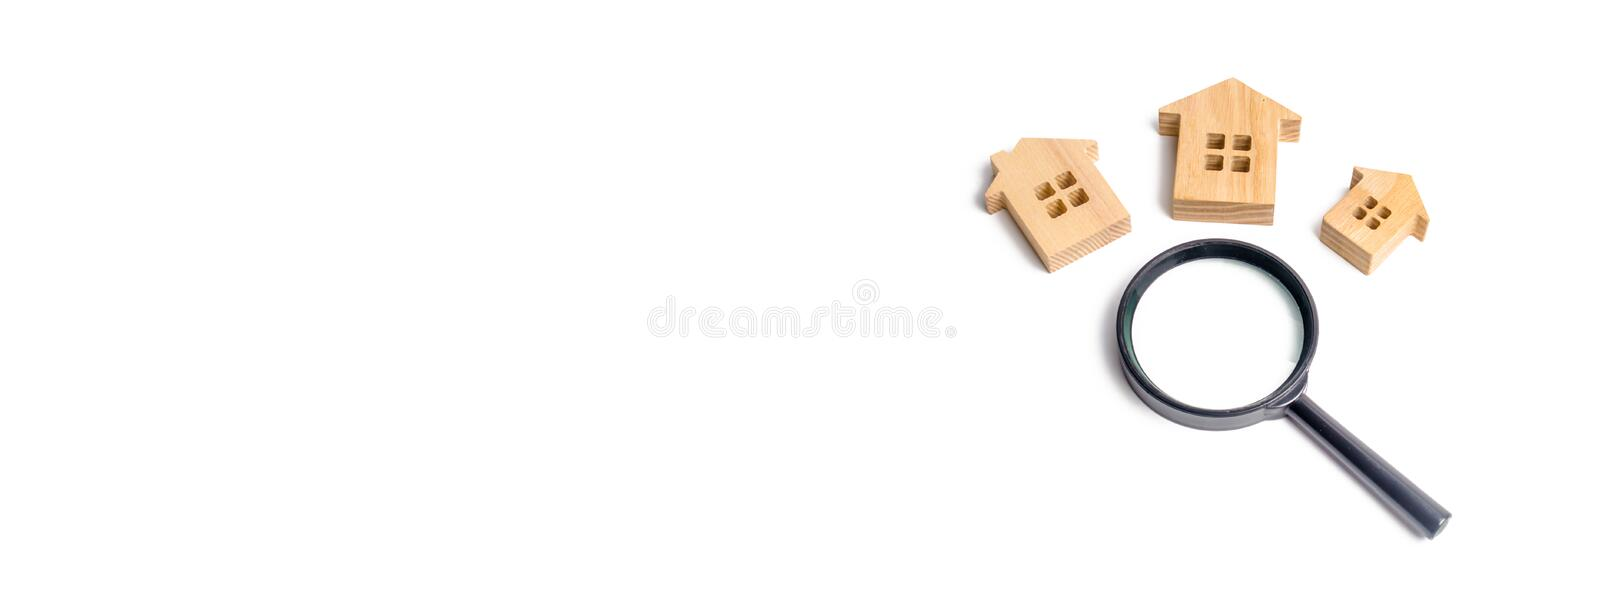 Three wooden houses on a white background. Buying and selling real estate, building new buildings, offices and homes. House search royalty free stock photos